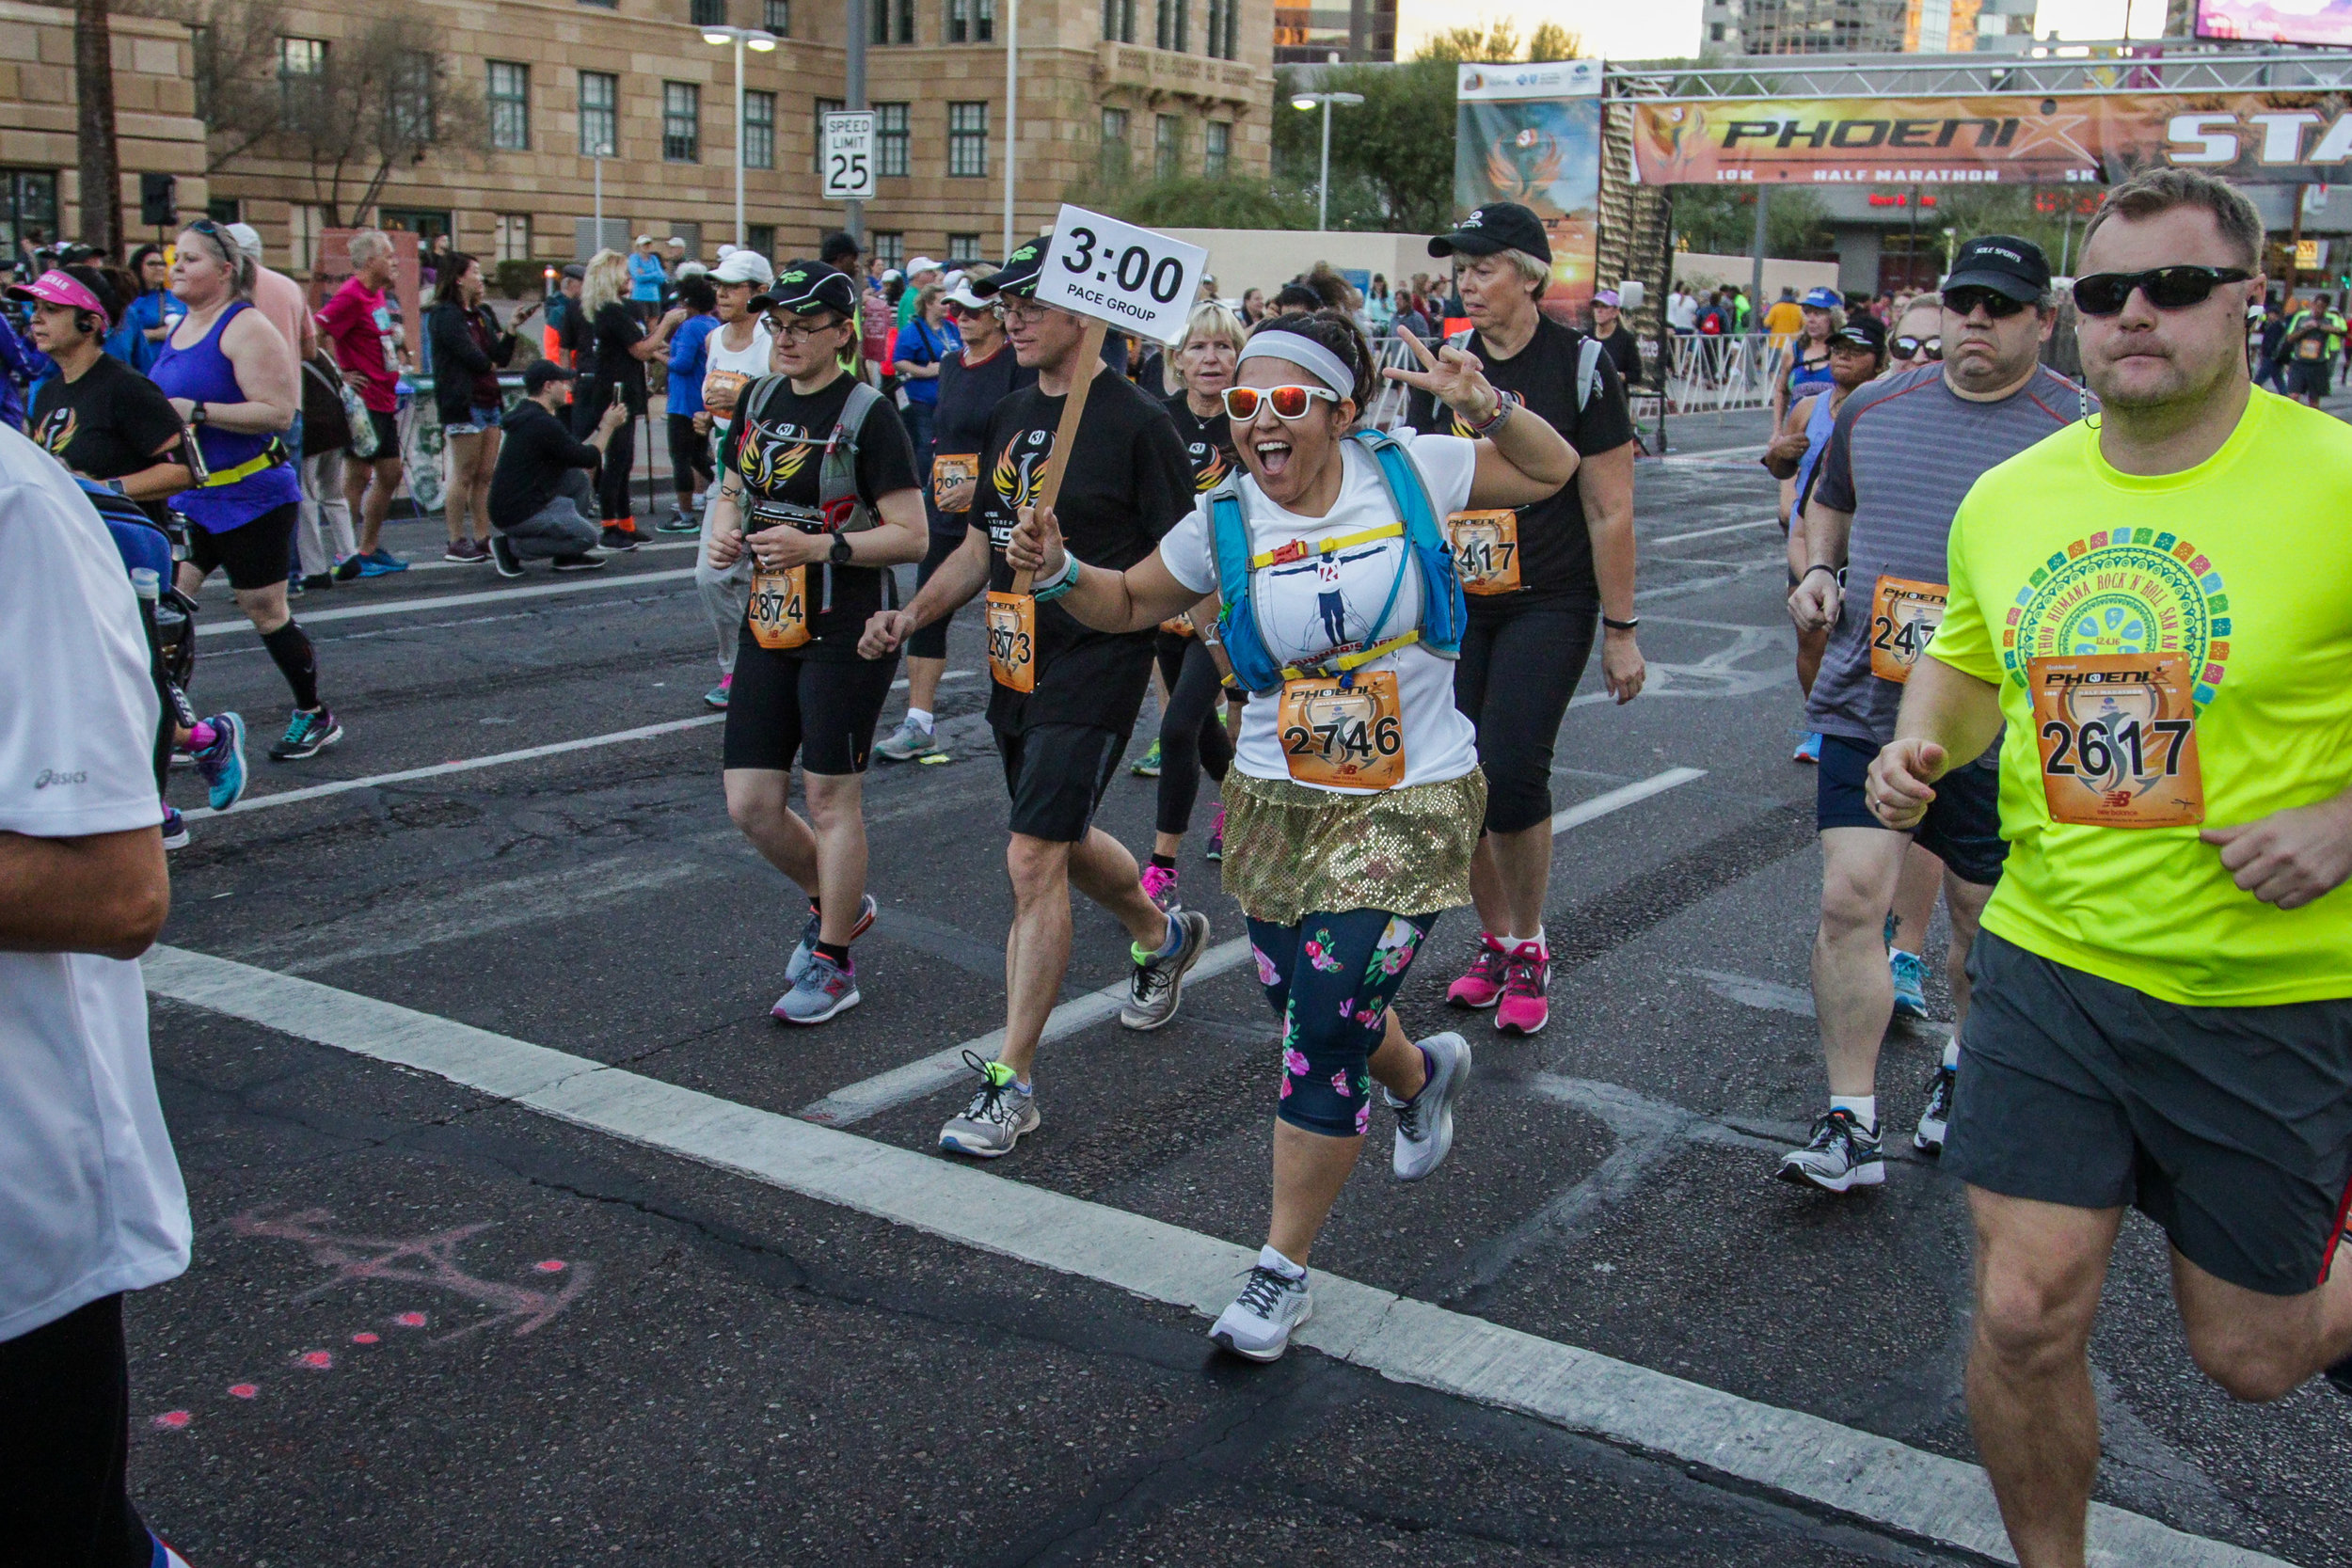 With Runner's Den on November 5, 2017 at the Phoenix 3TV 10k and Half Marathon in Downtown Phoenix